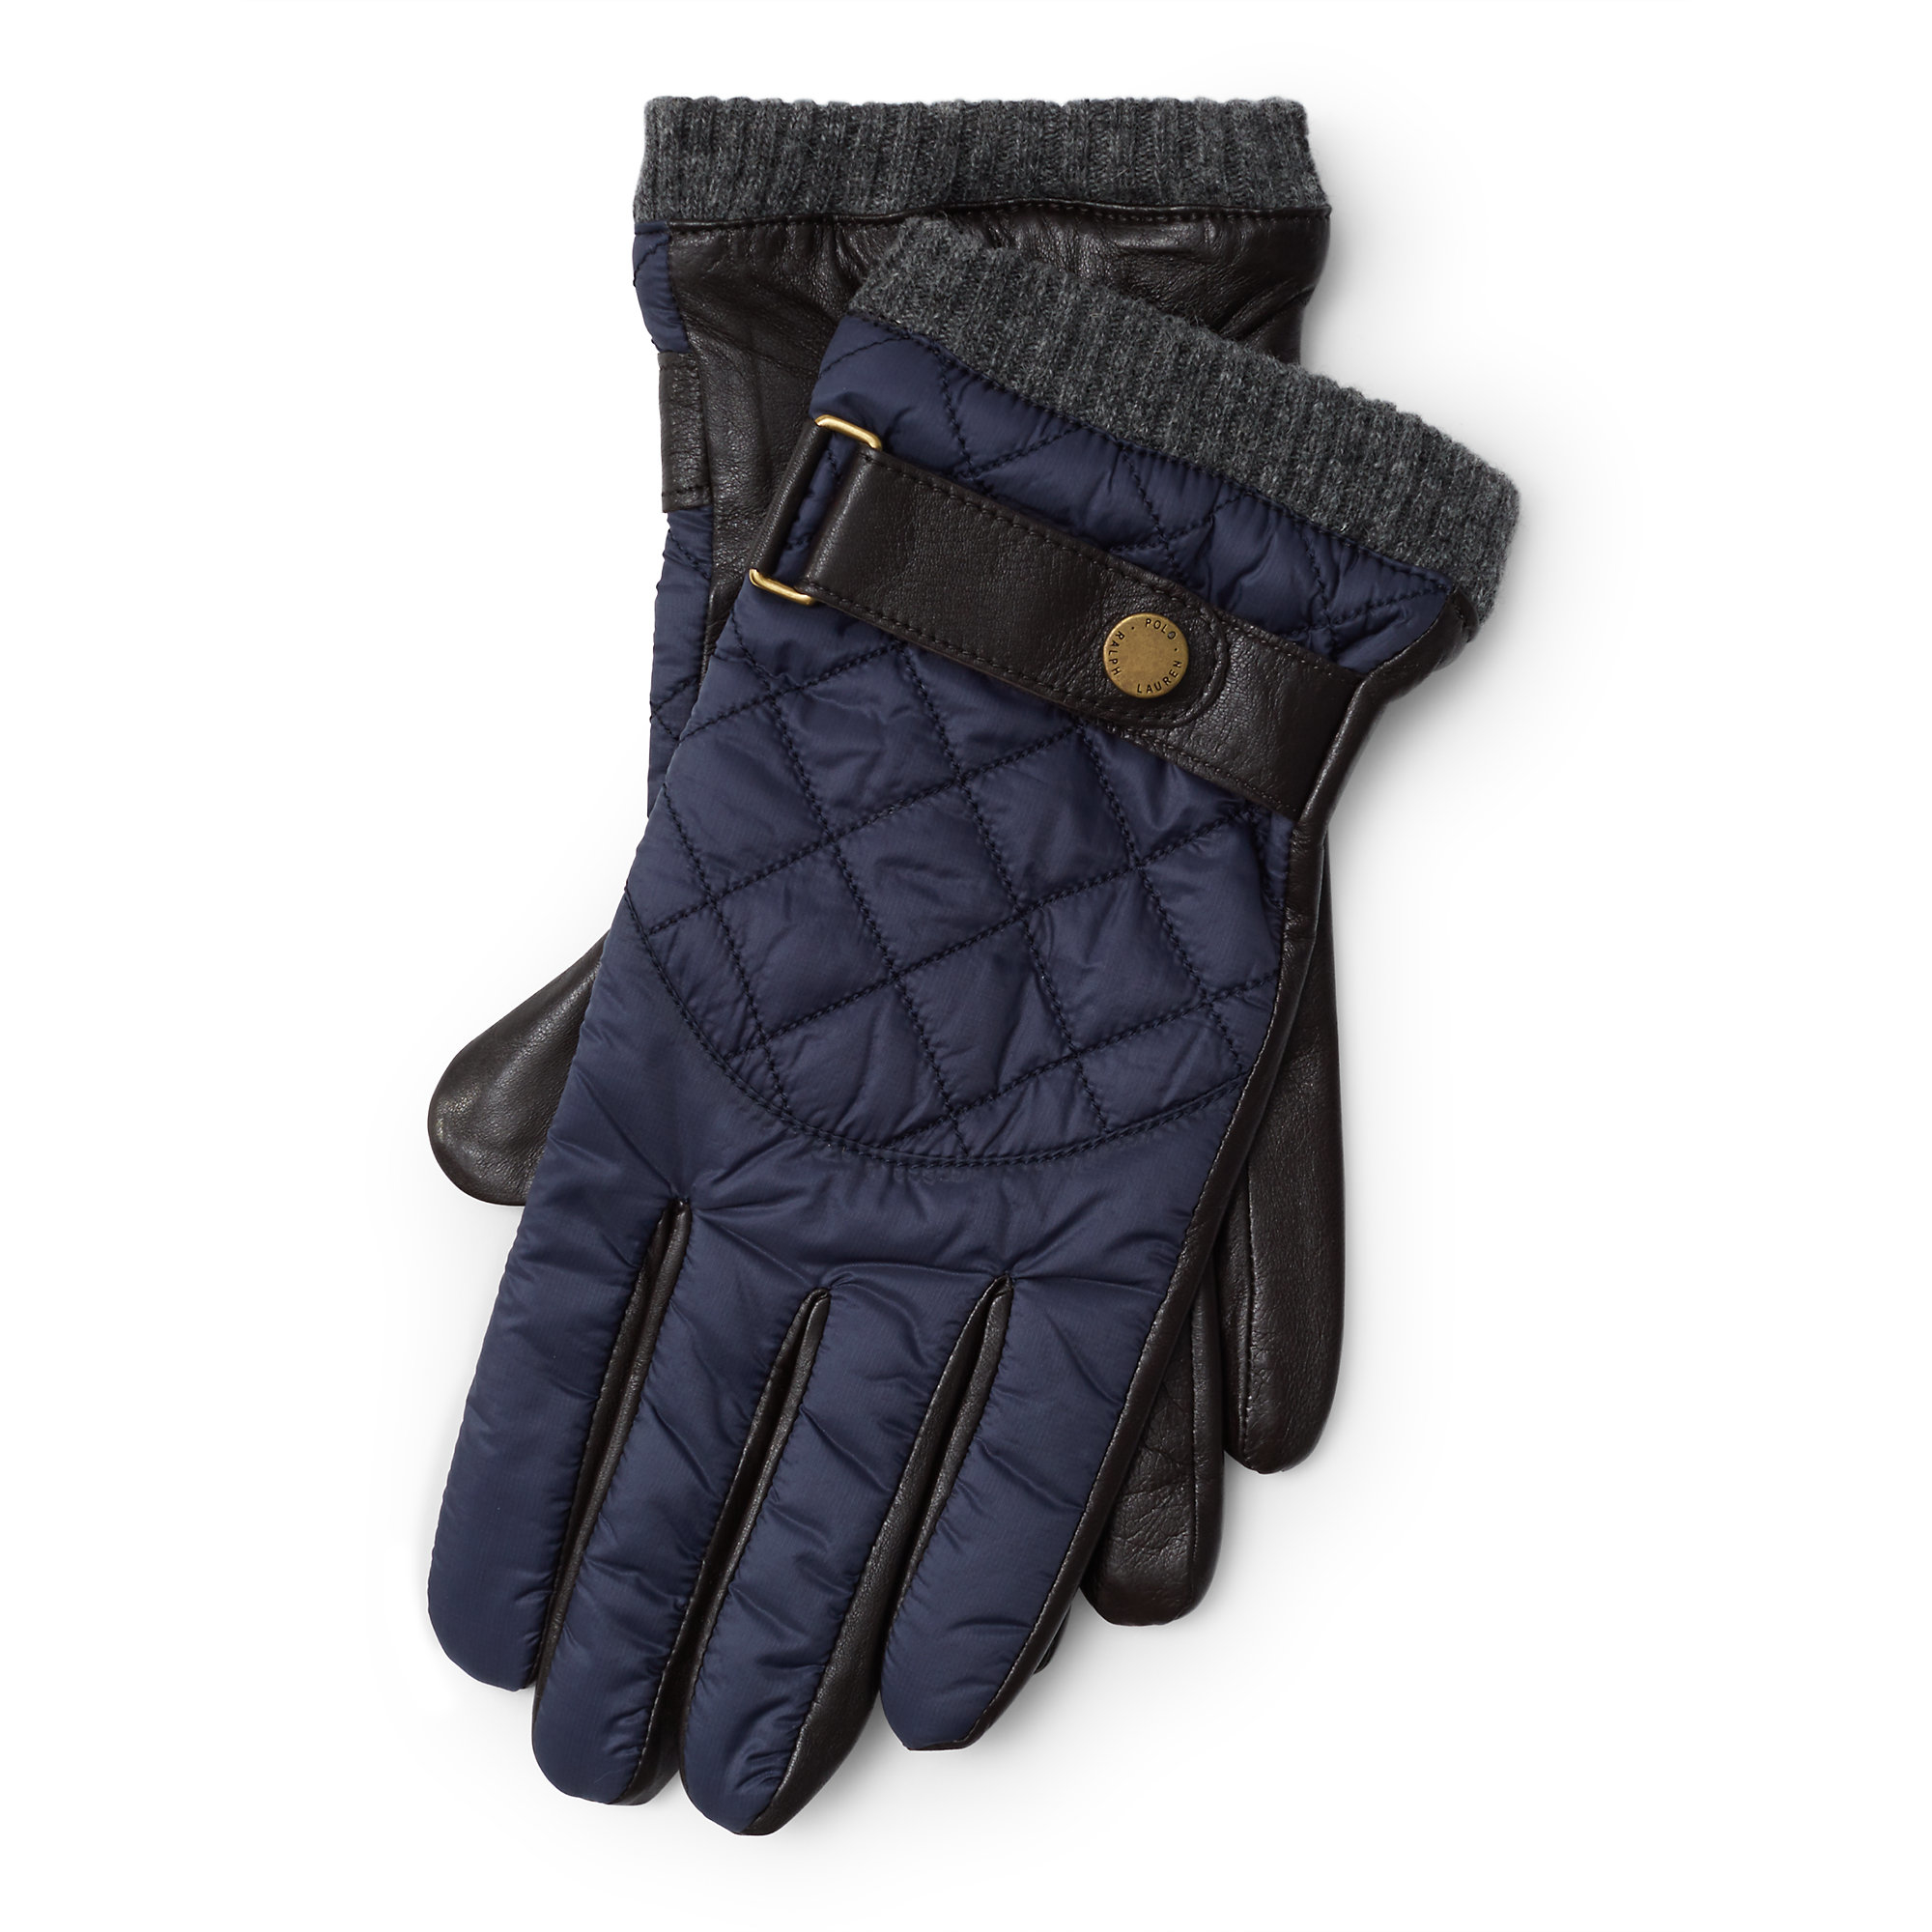 Lyst - Polo ralph lauren Diamond-quilted Leather Gloves in Black ... : quilted leather gloves mens - Adamdwight.com